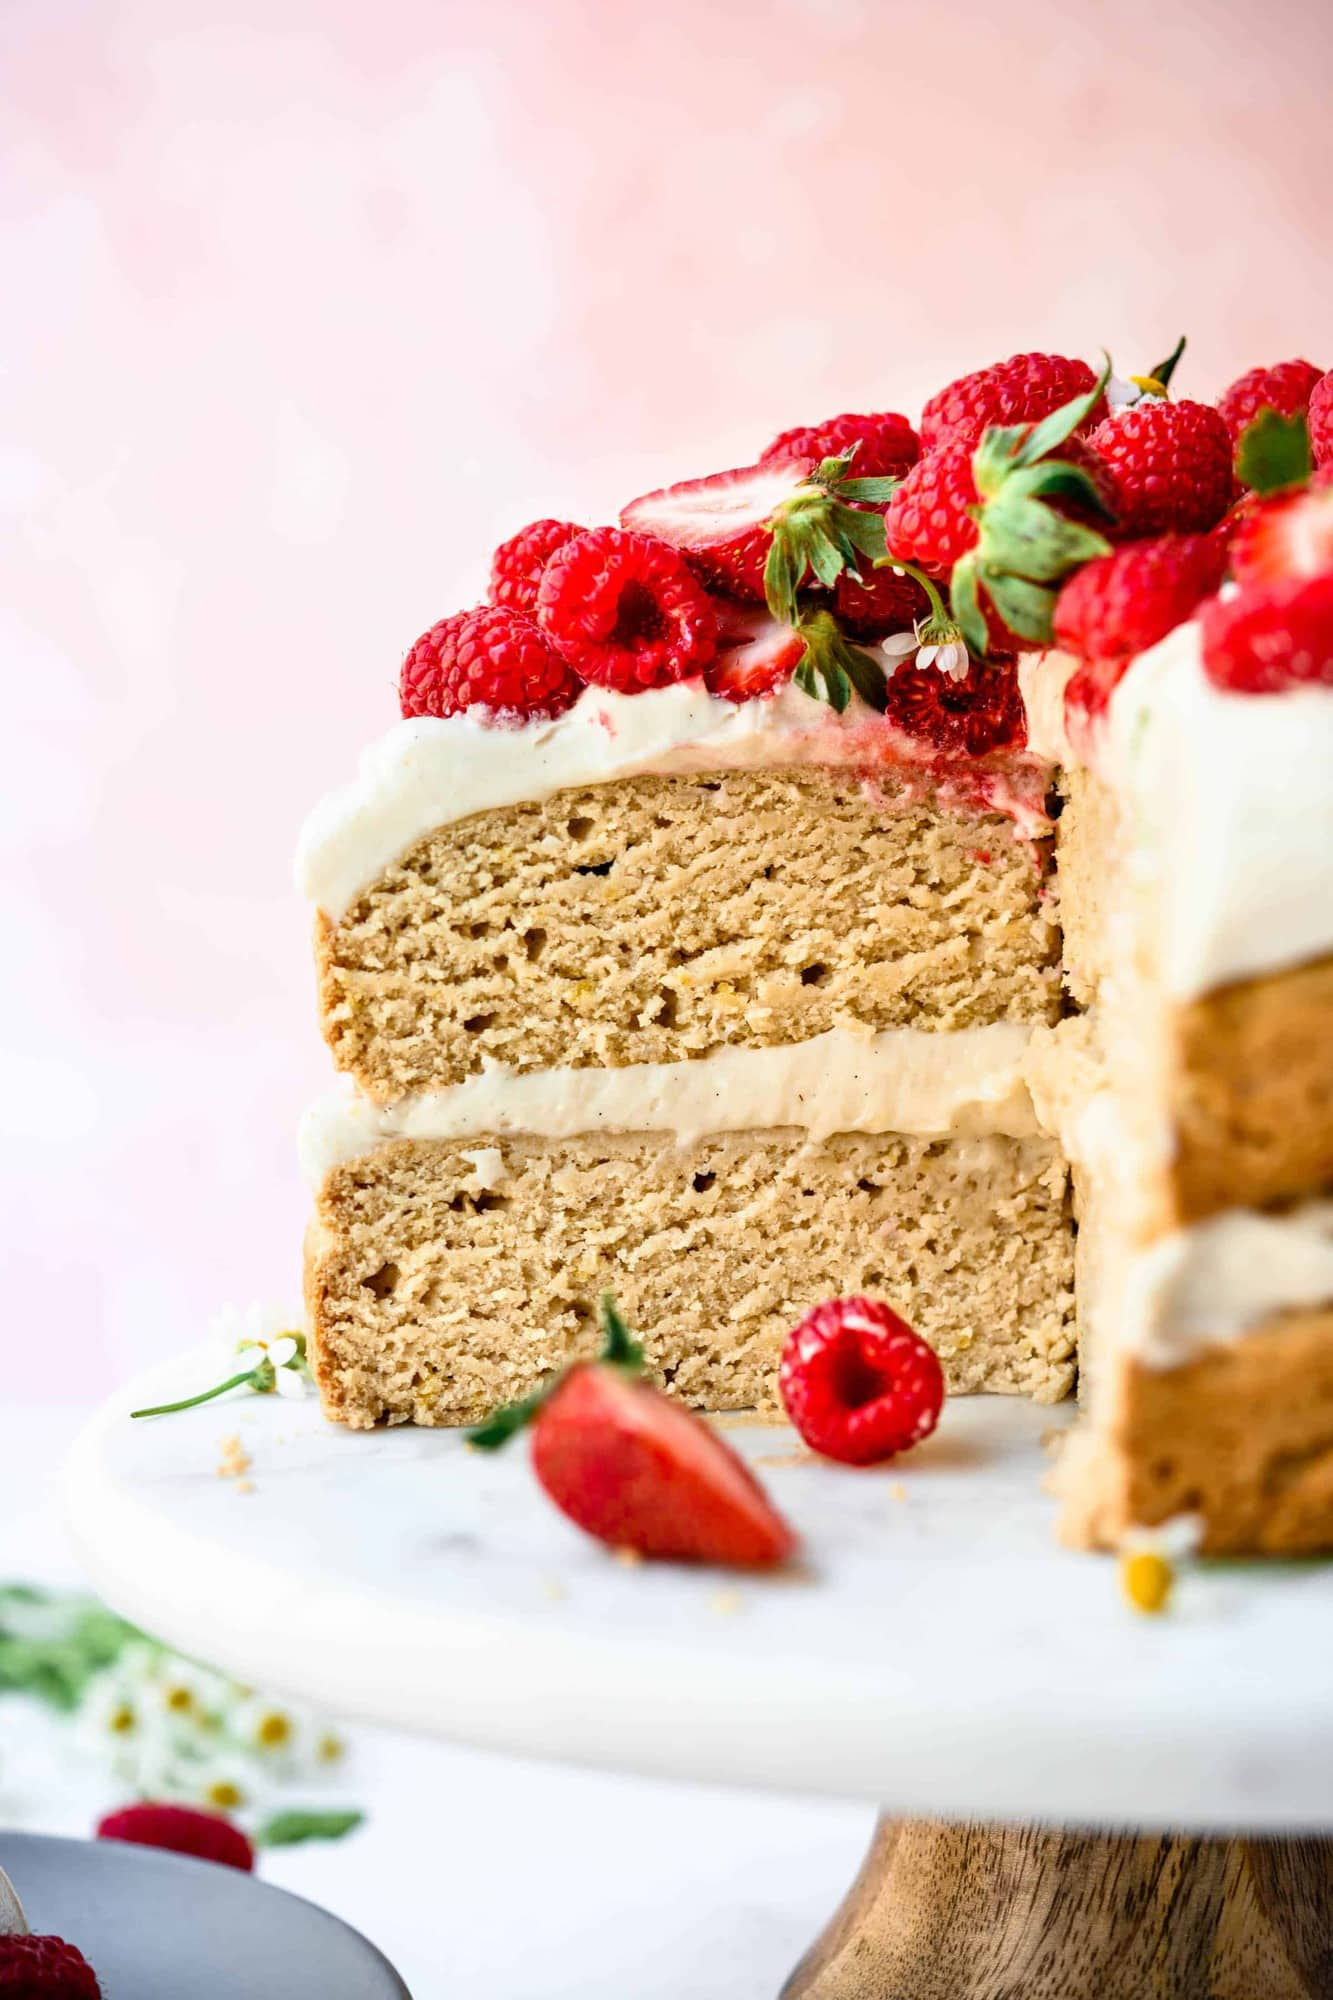 Side view of slice of vegan and gluten free layer cake topped with fresh berries